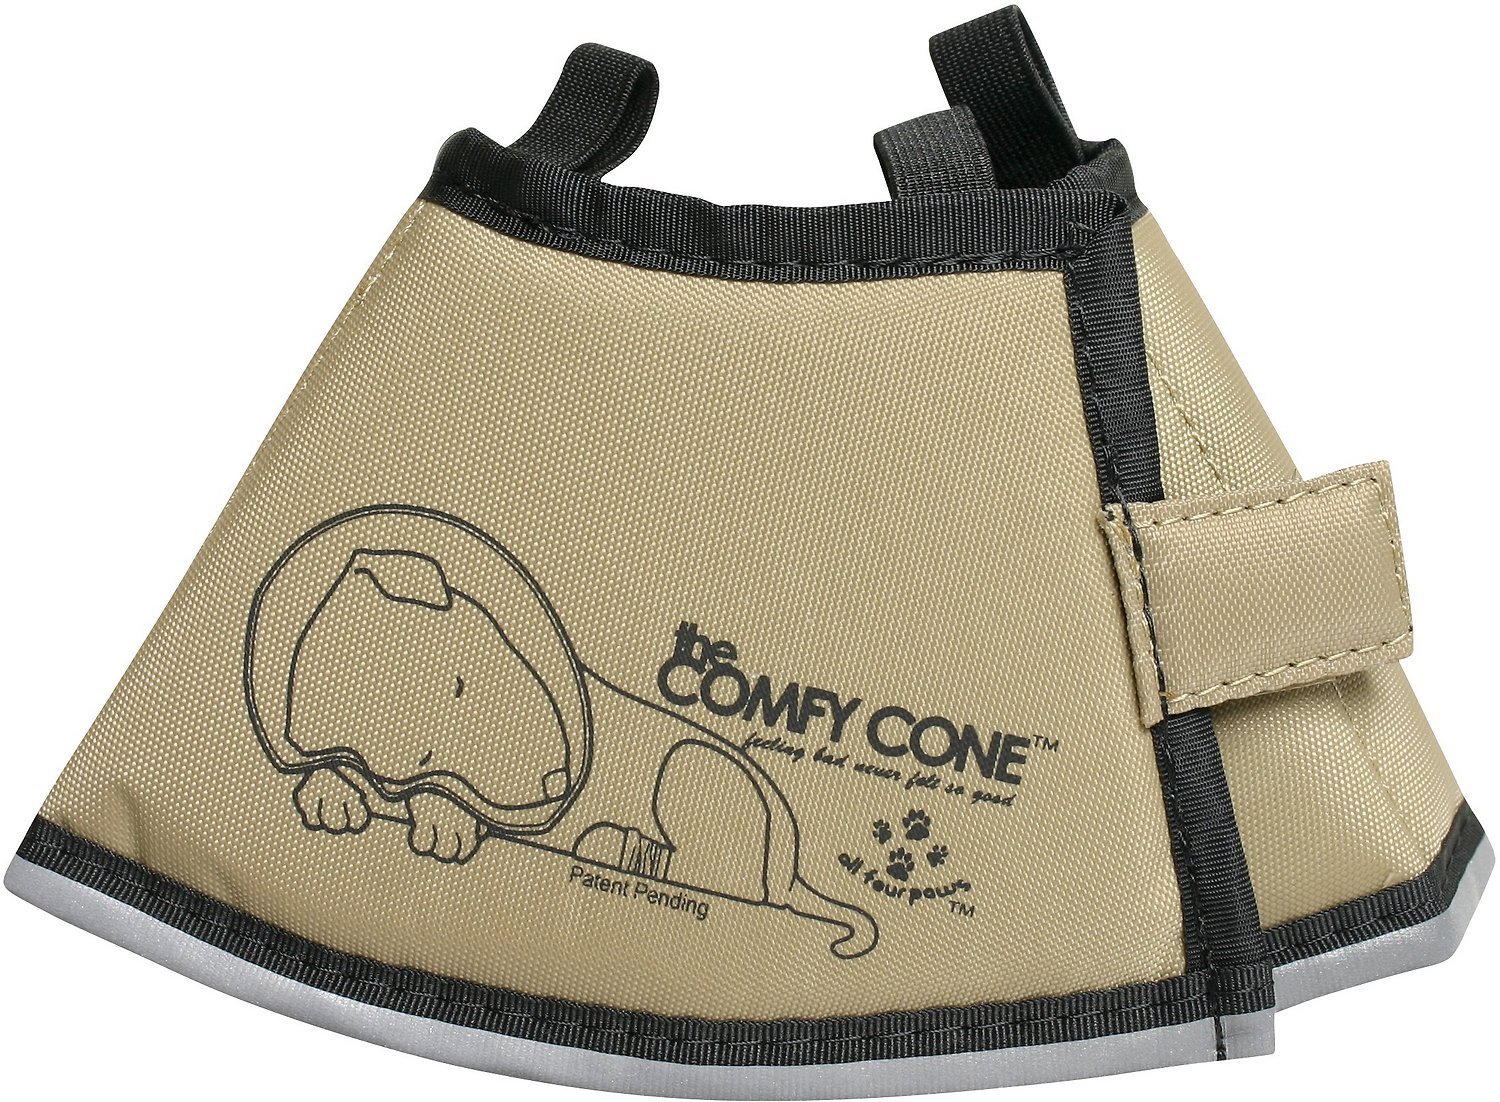 Comfy Cone E Collar For Dogs Cats Tan